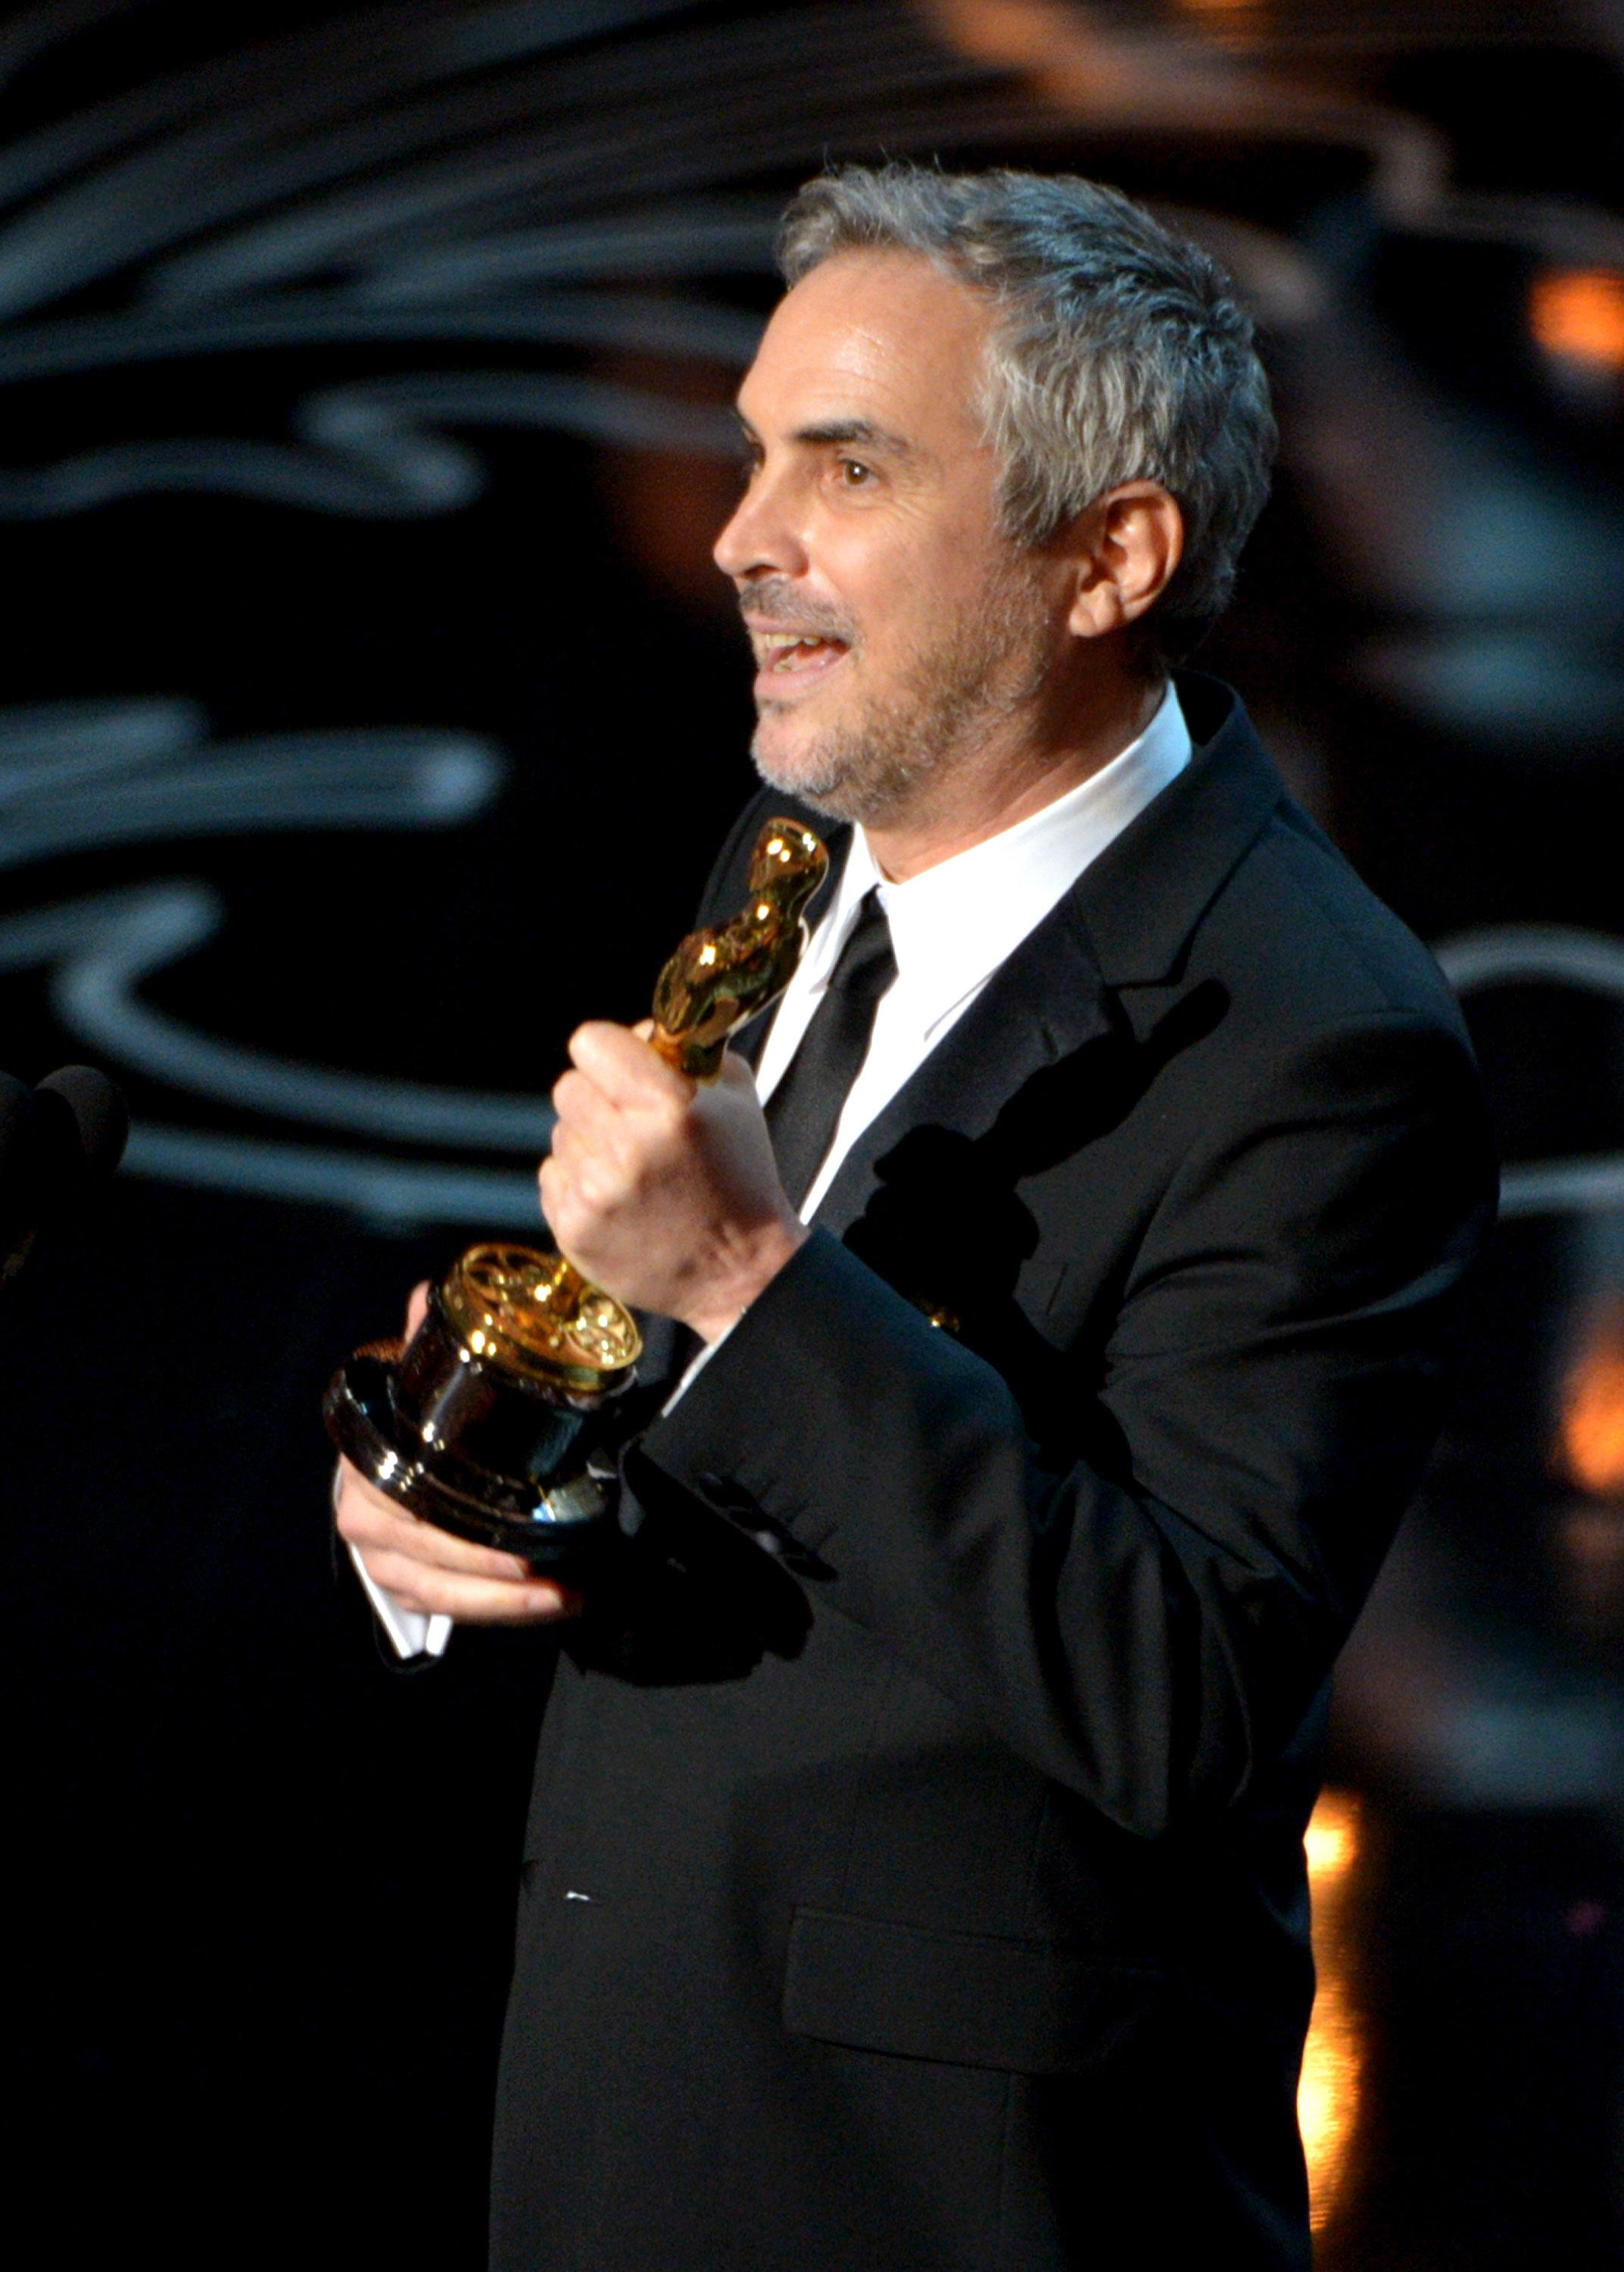 """Alfonso Cuaron accepts the award for best director for """"Gravity"""" during the Oscars at the Dolby Theatre on Sunday, March 2, 2014, in Los Angeles. (Photo by John Shearer/Invision/AP)"""